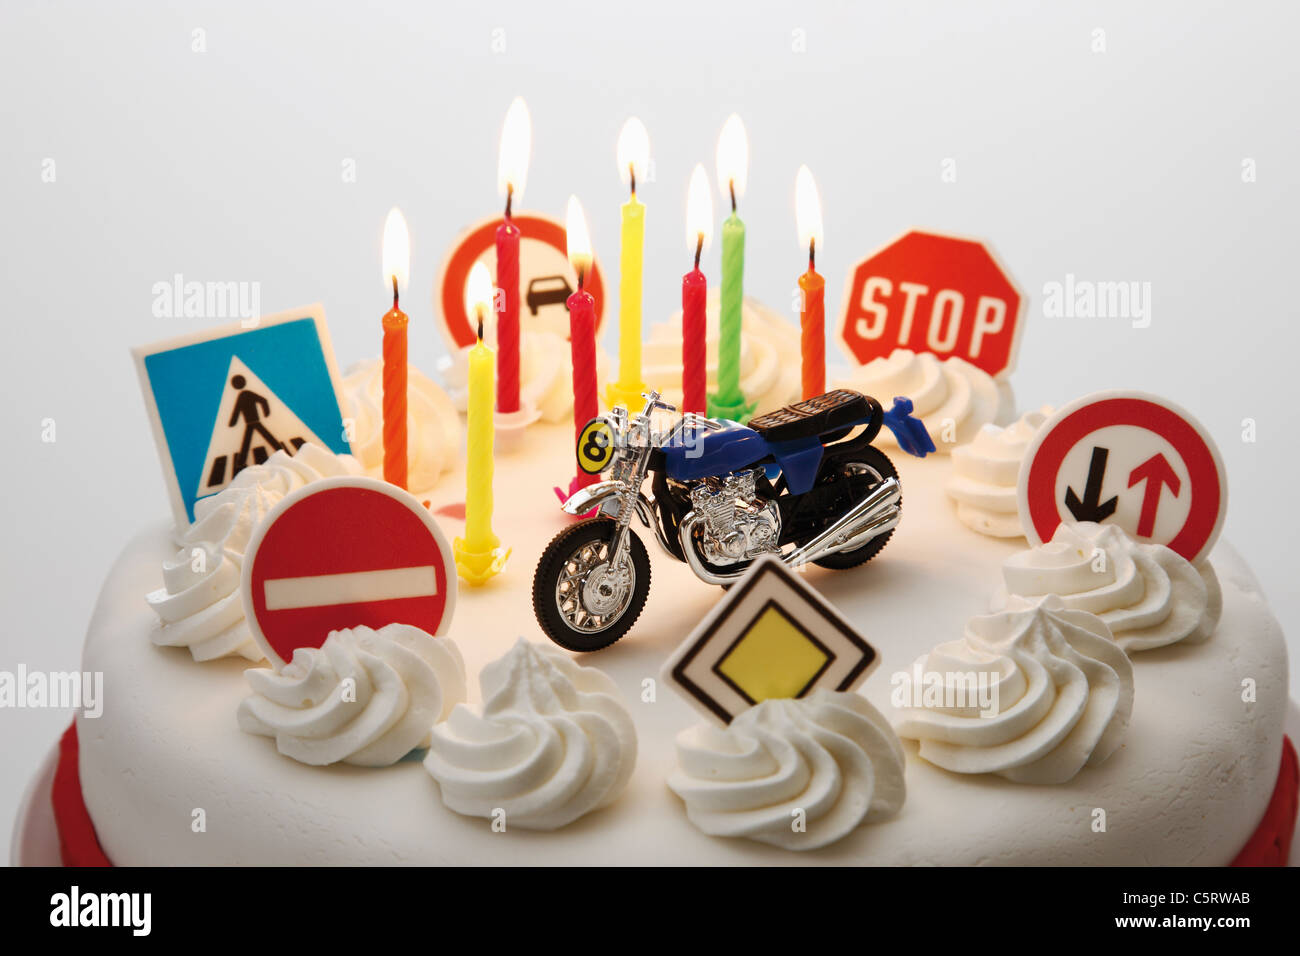 Fancy cake with road signs and toy motorbike, close-up - Stock Image